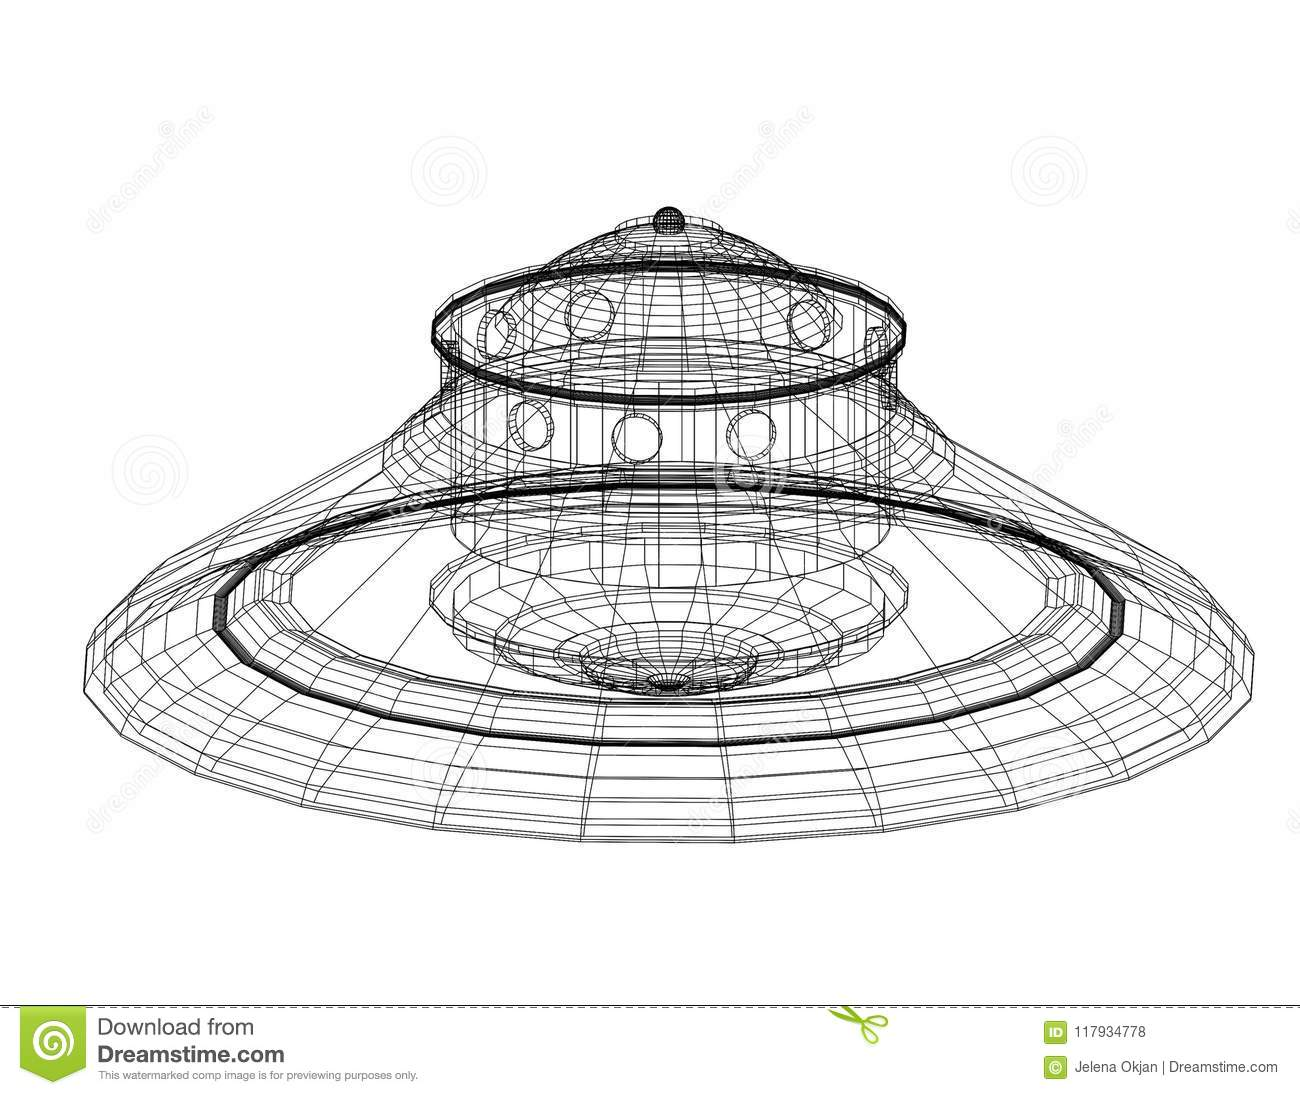 Download Unidentified Flying Object - UFO Architect Blueprint - Isolated Stock Photo - Image of aircraft, geometry: 117934778